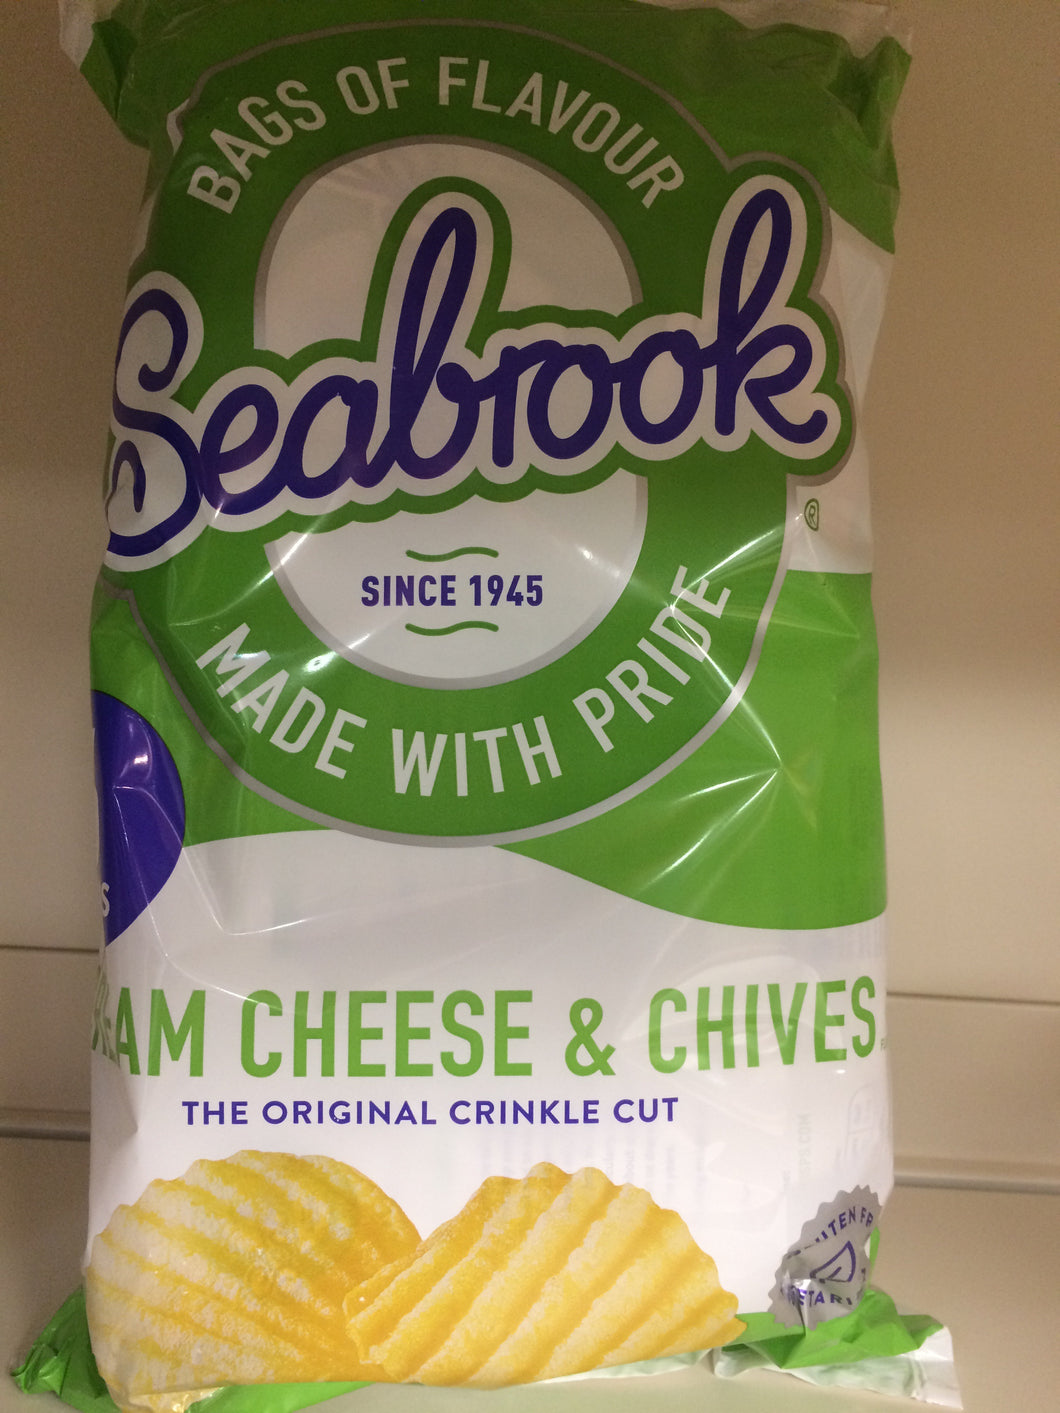 Seabrook Cream Cheese & Chives 6x 25g Pack